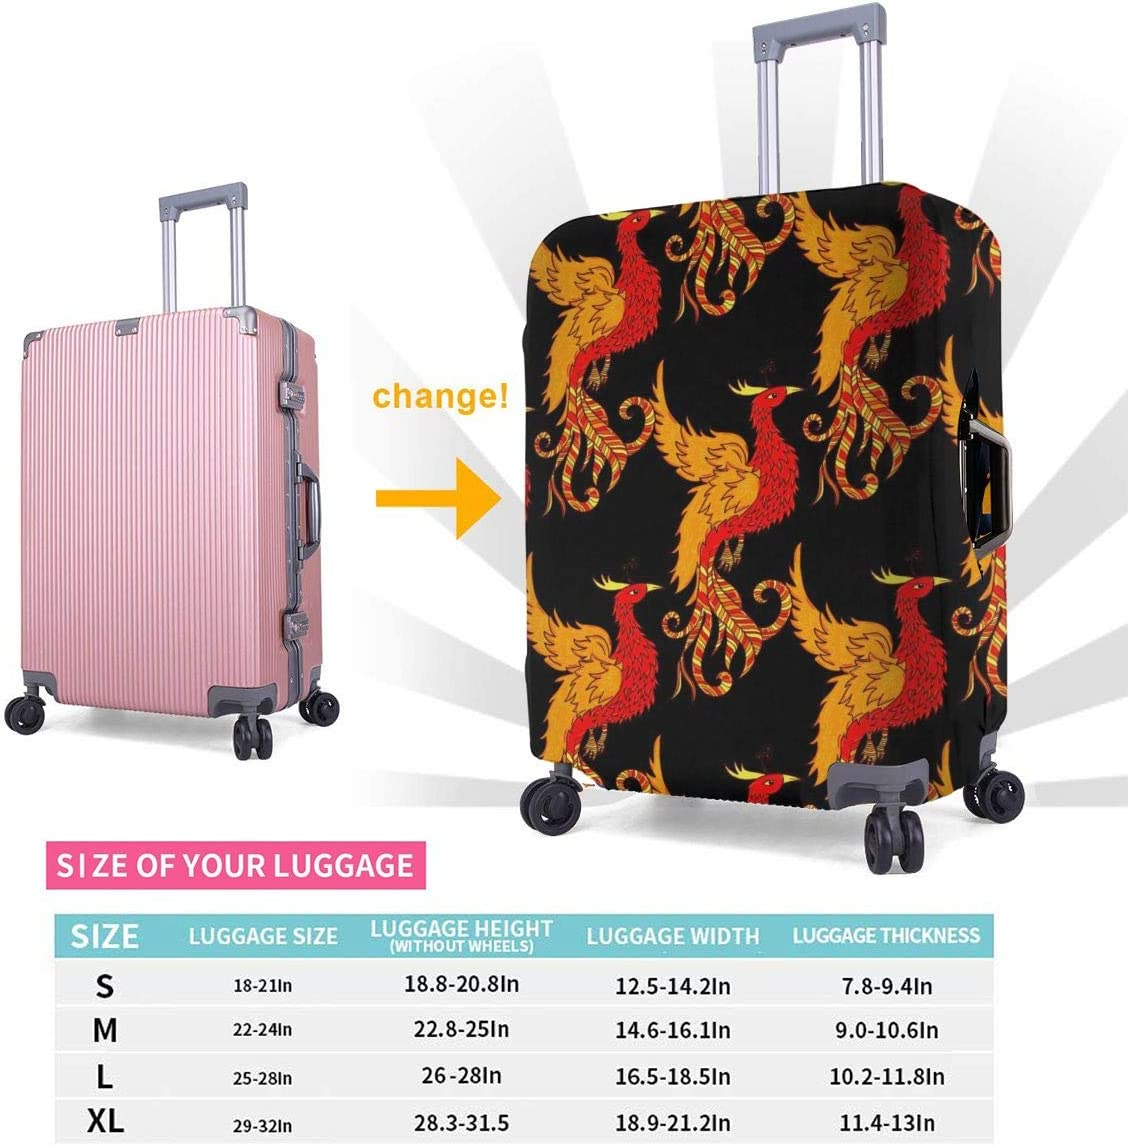 Chinese Red Phoenix XL Luggage Covers Travel Luggage Cover Spandex Travel Luggage Cover Suitcase Protector Fits 18-32 Inch Luggage Case